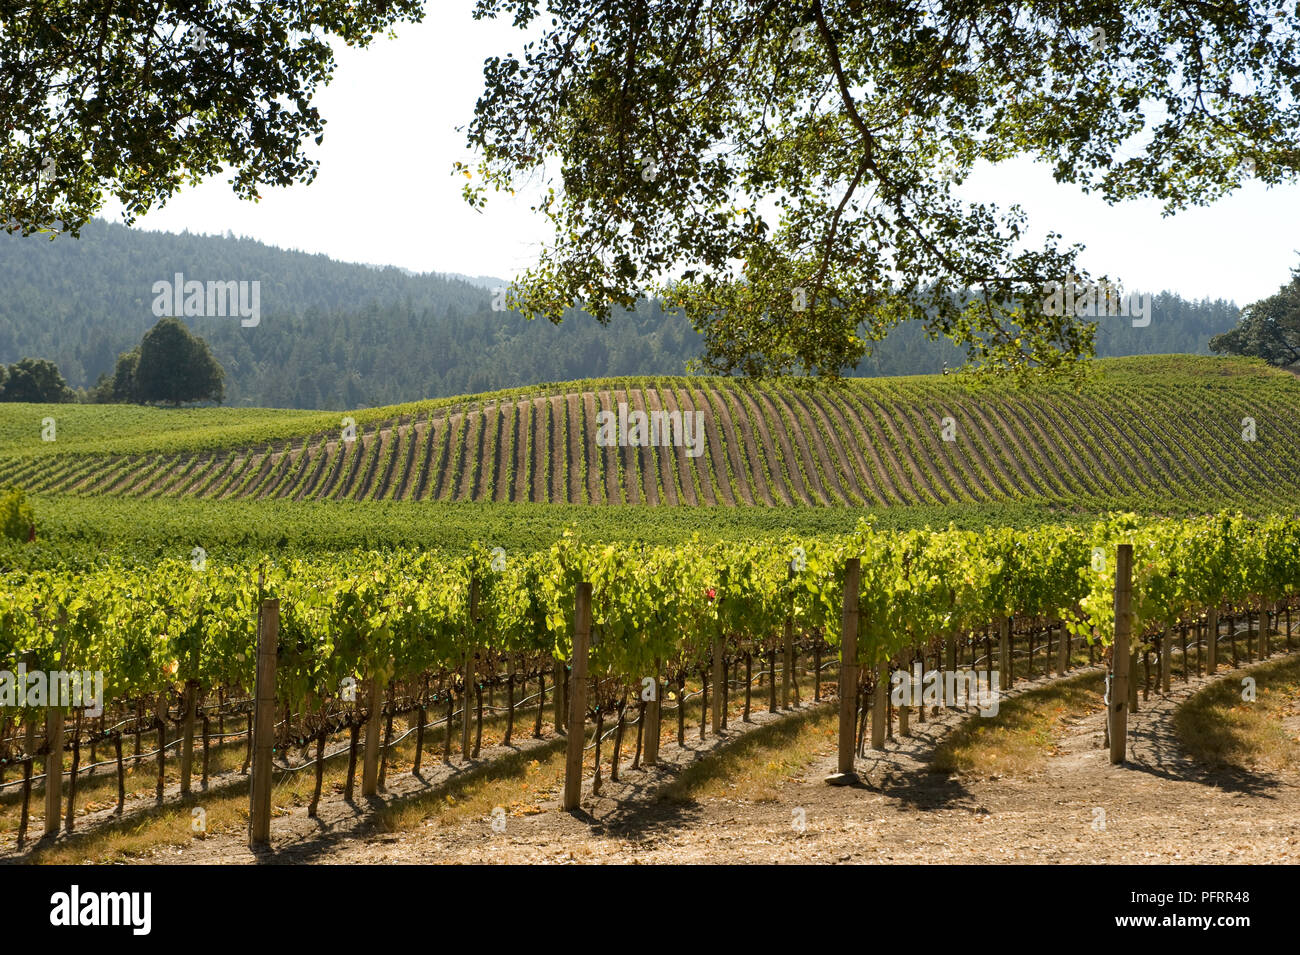 USA, California, Mendocino County, Navarro Vineyards in Anderson Valley - Stock Image